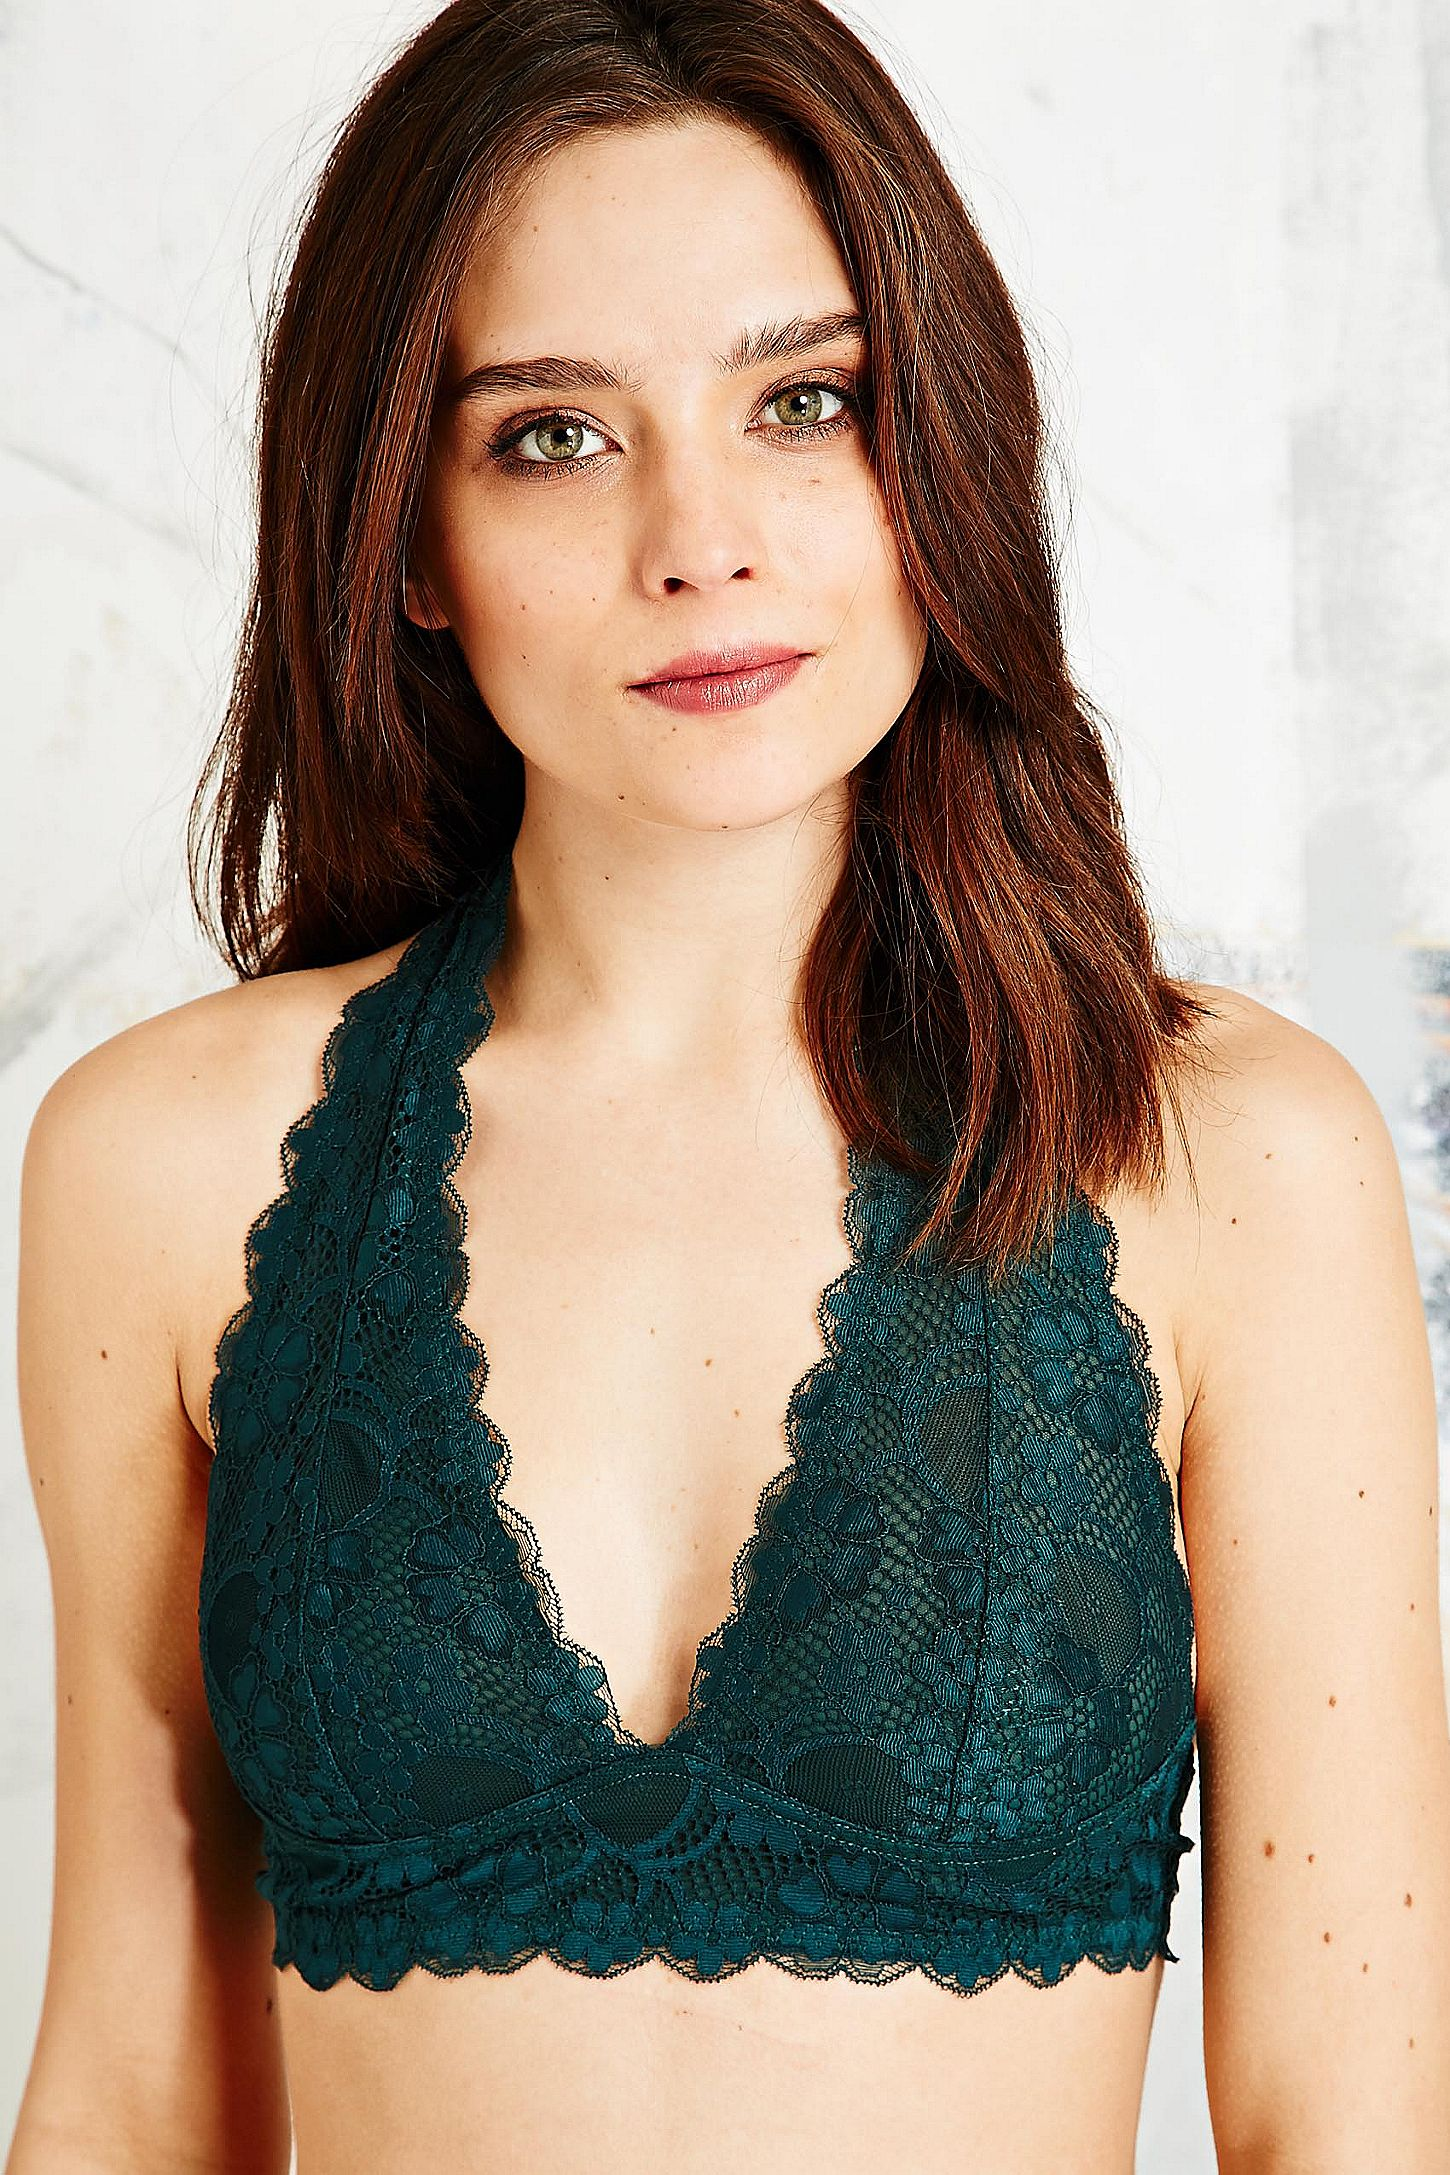 574e8e2b4f7 Free People Galloon Lace Halterneck Bra in Forest Green. Click on image to  zoom. Hover to zoom. Double Tap to Zoom